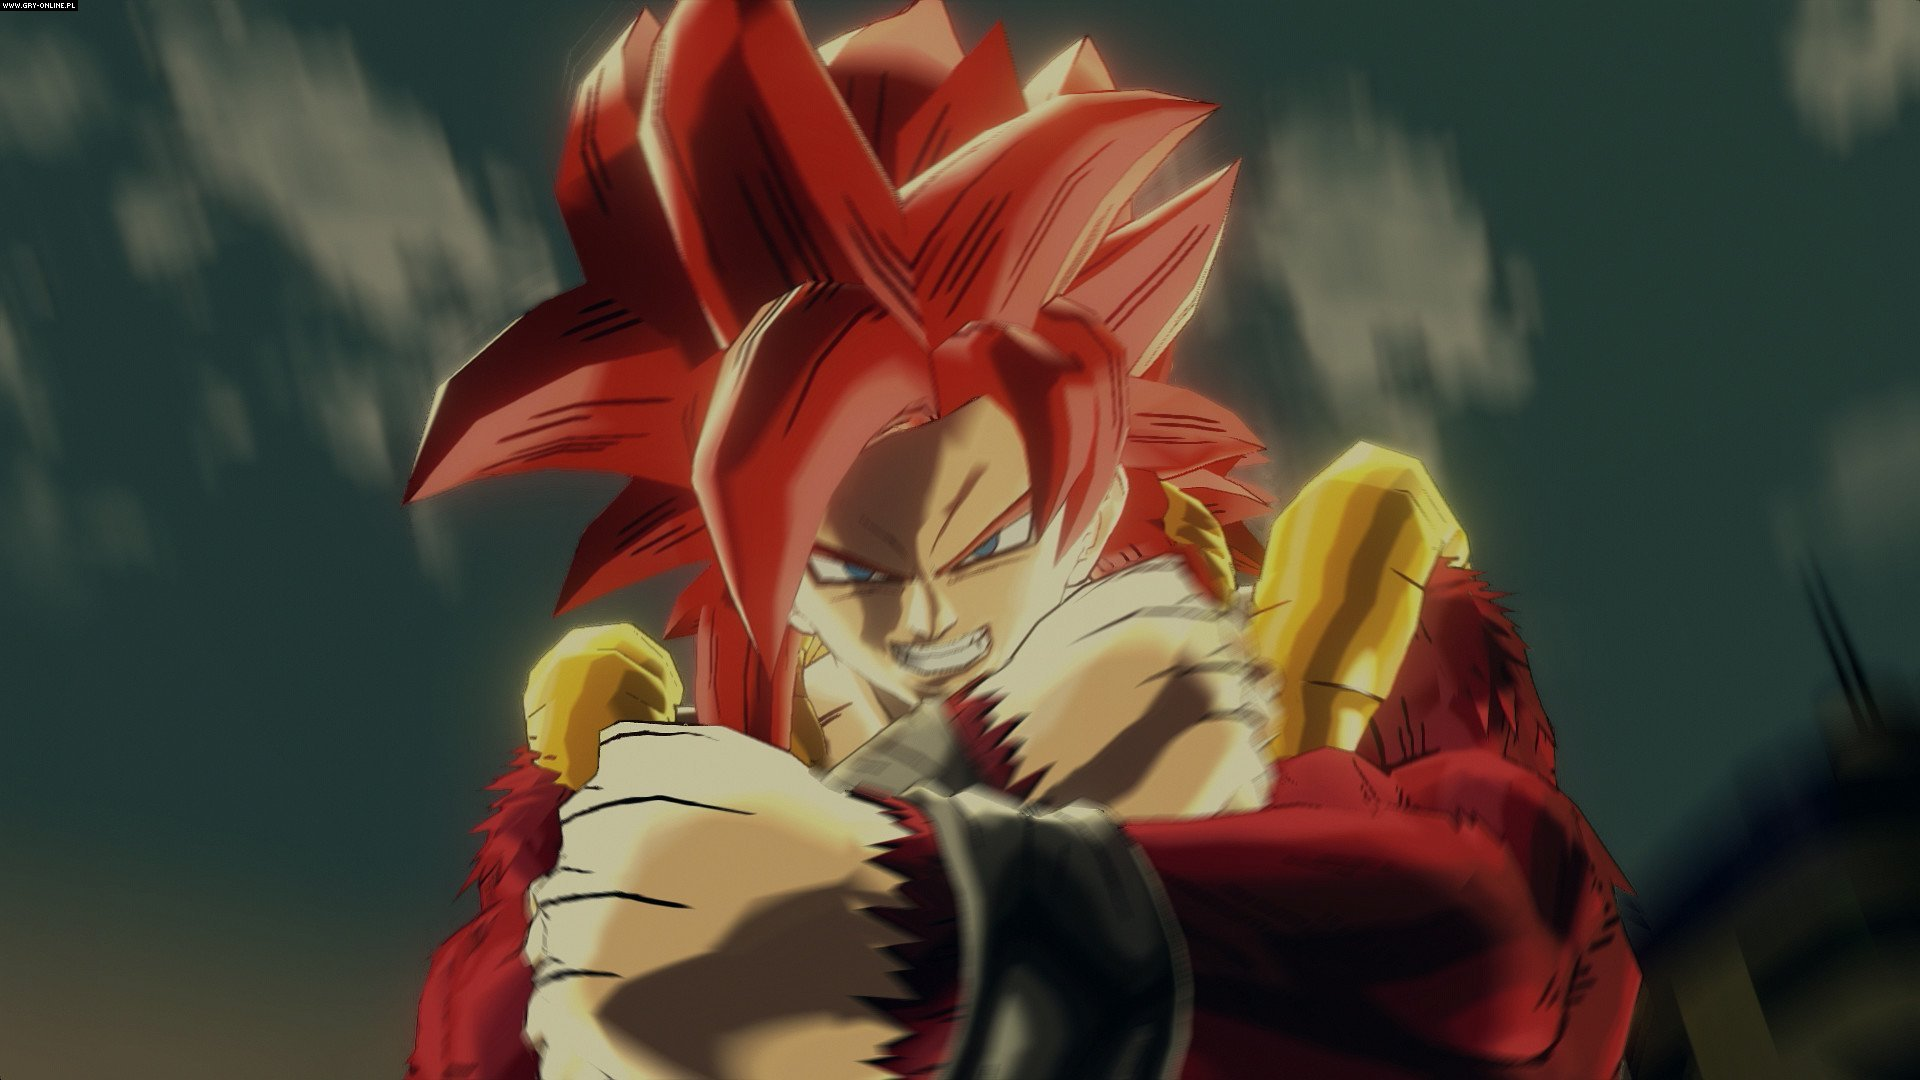 Dragon Ball: Xenoverse PC, X360, PS3, PS4, XONE Gry Screen 1/56, Dimps Corporation, Bandai Namco Entertainment